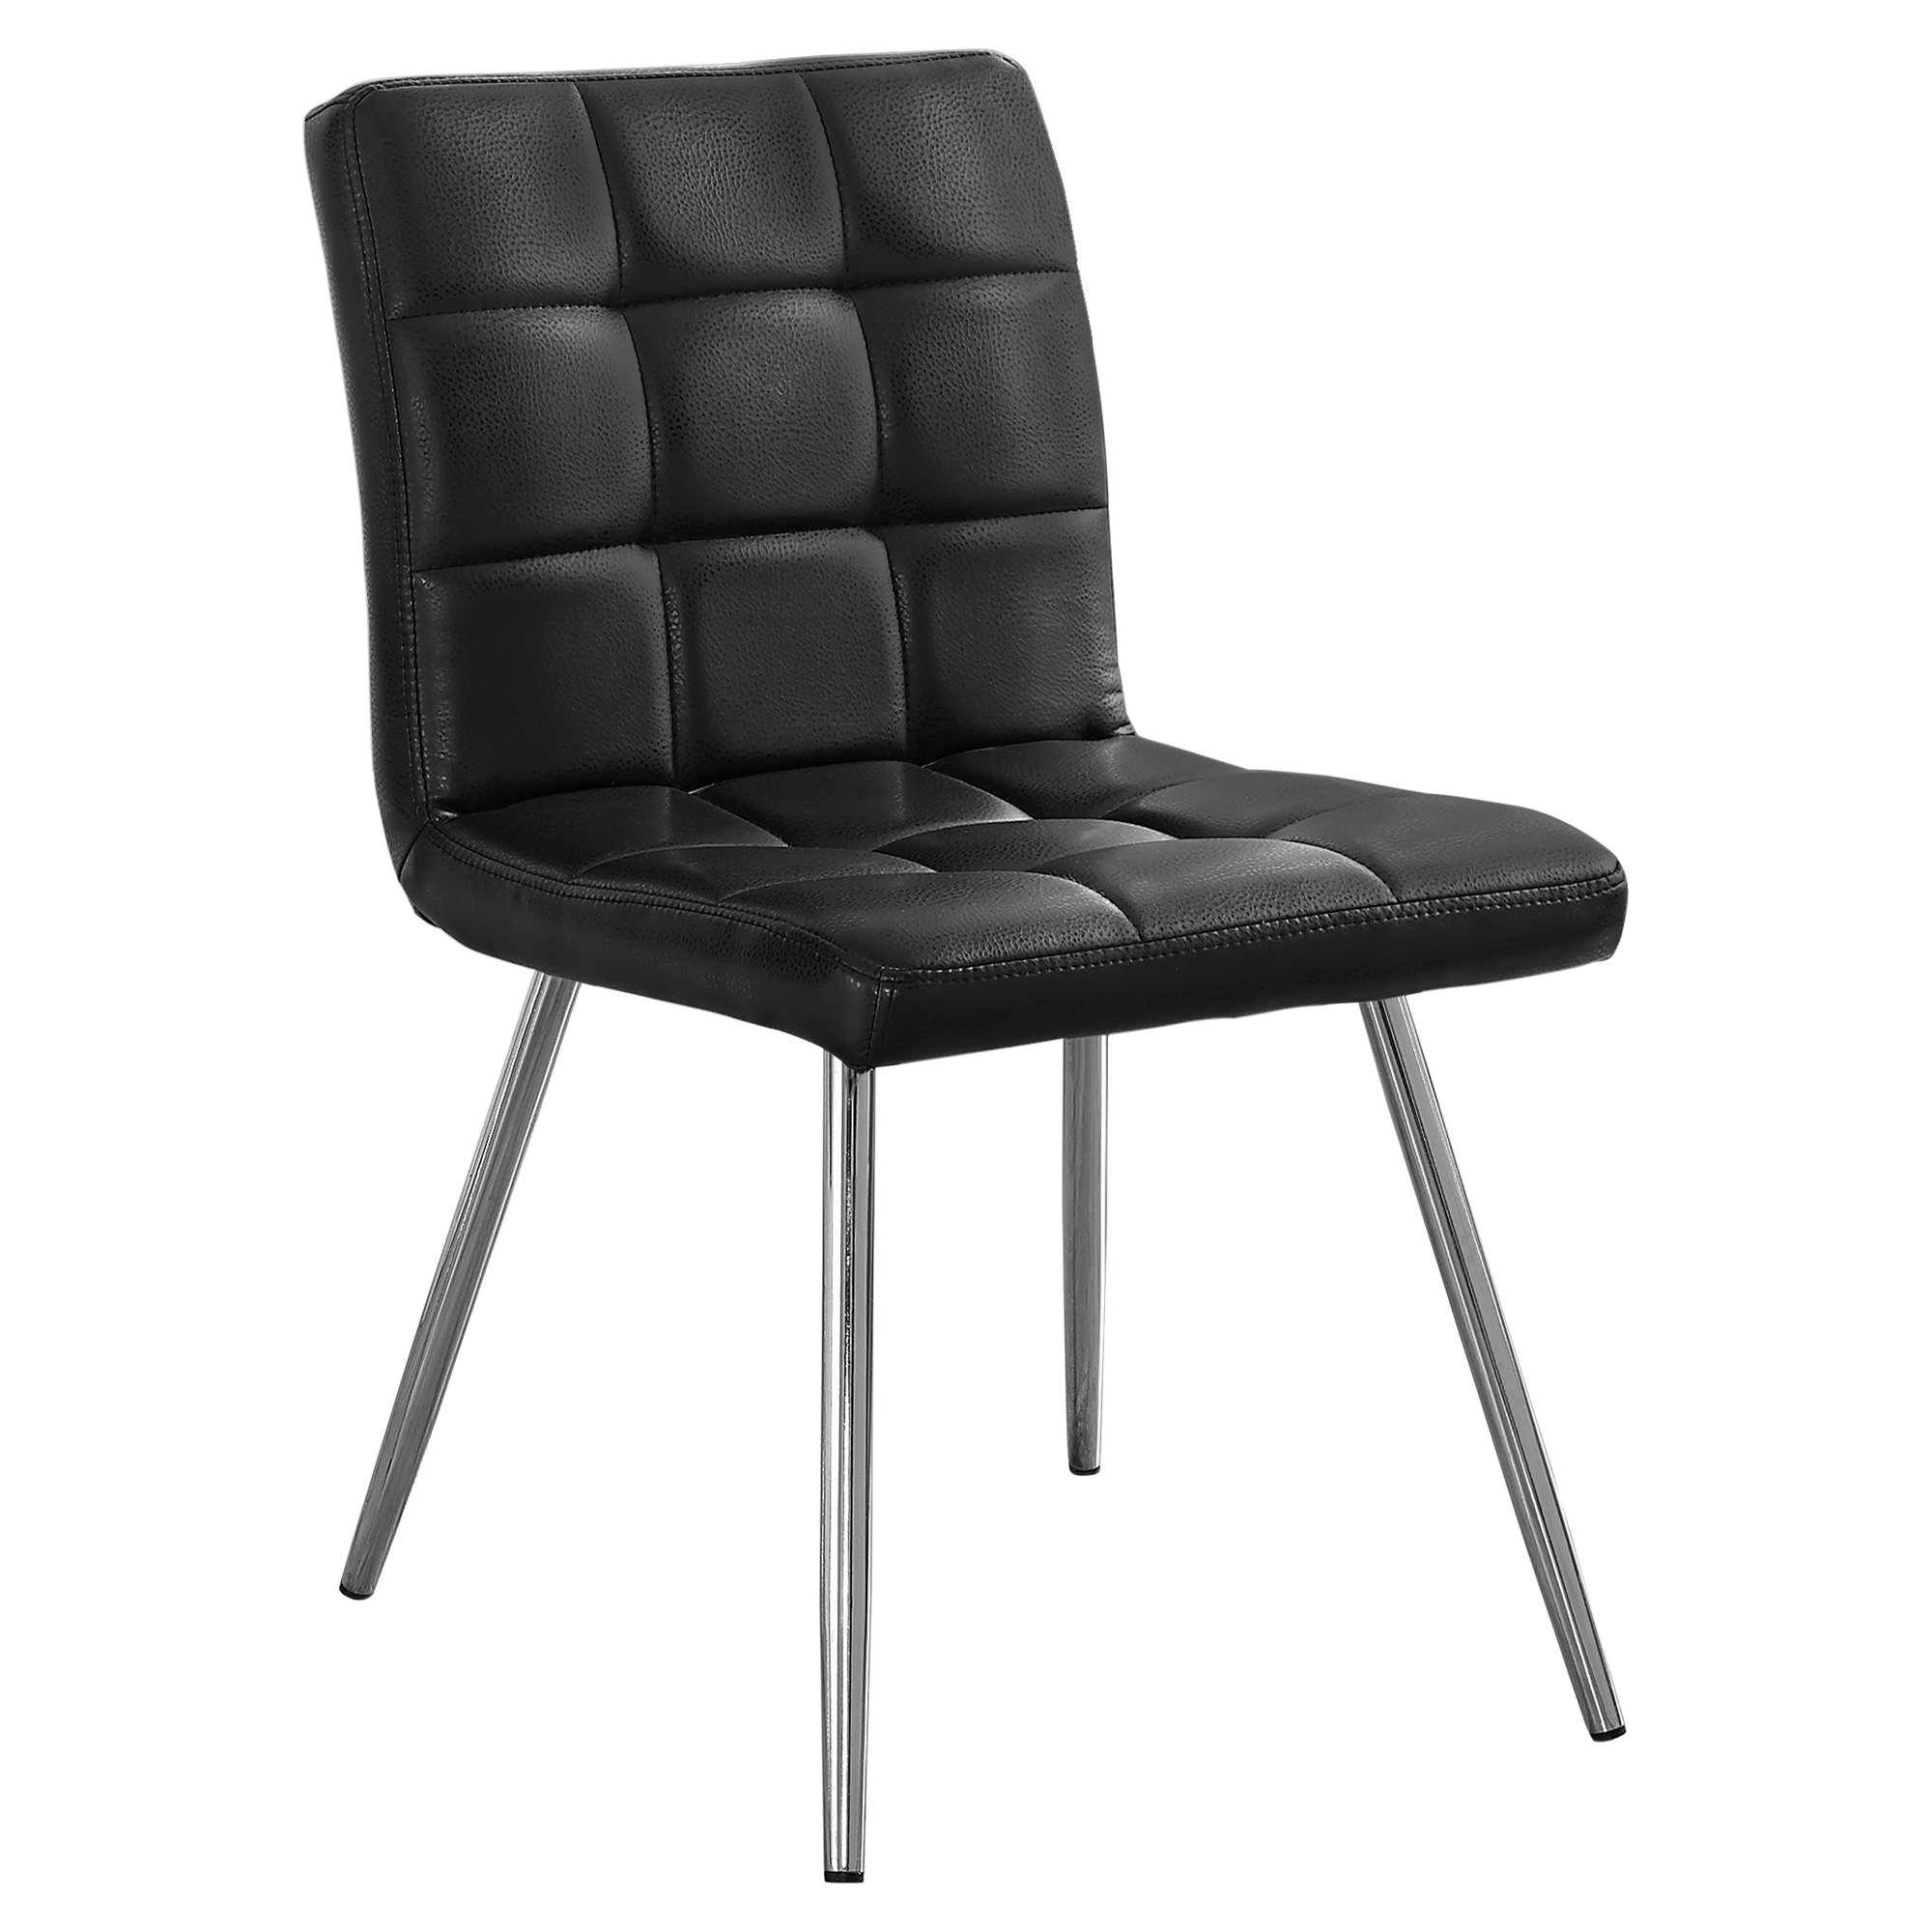 Dining Chair 2pcs 32 H Black Leather Look Chrome Victoria Rose Decor